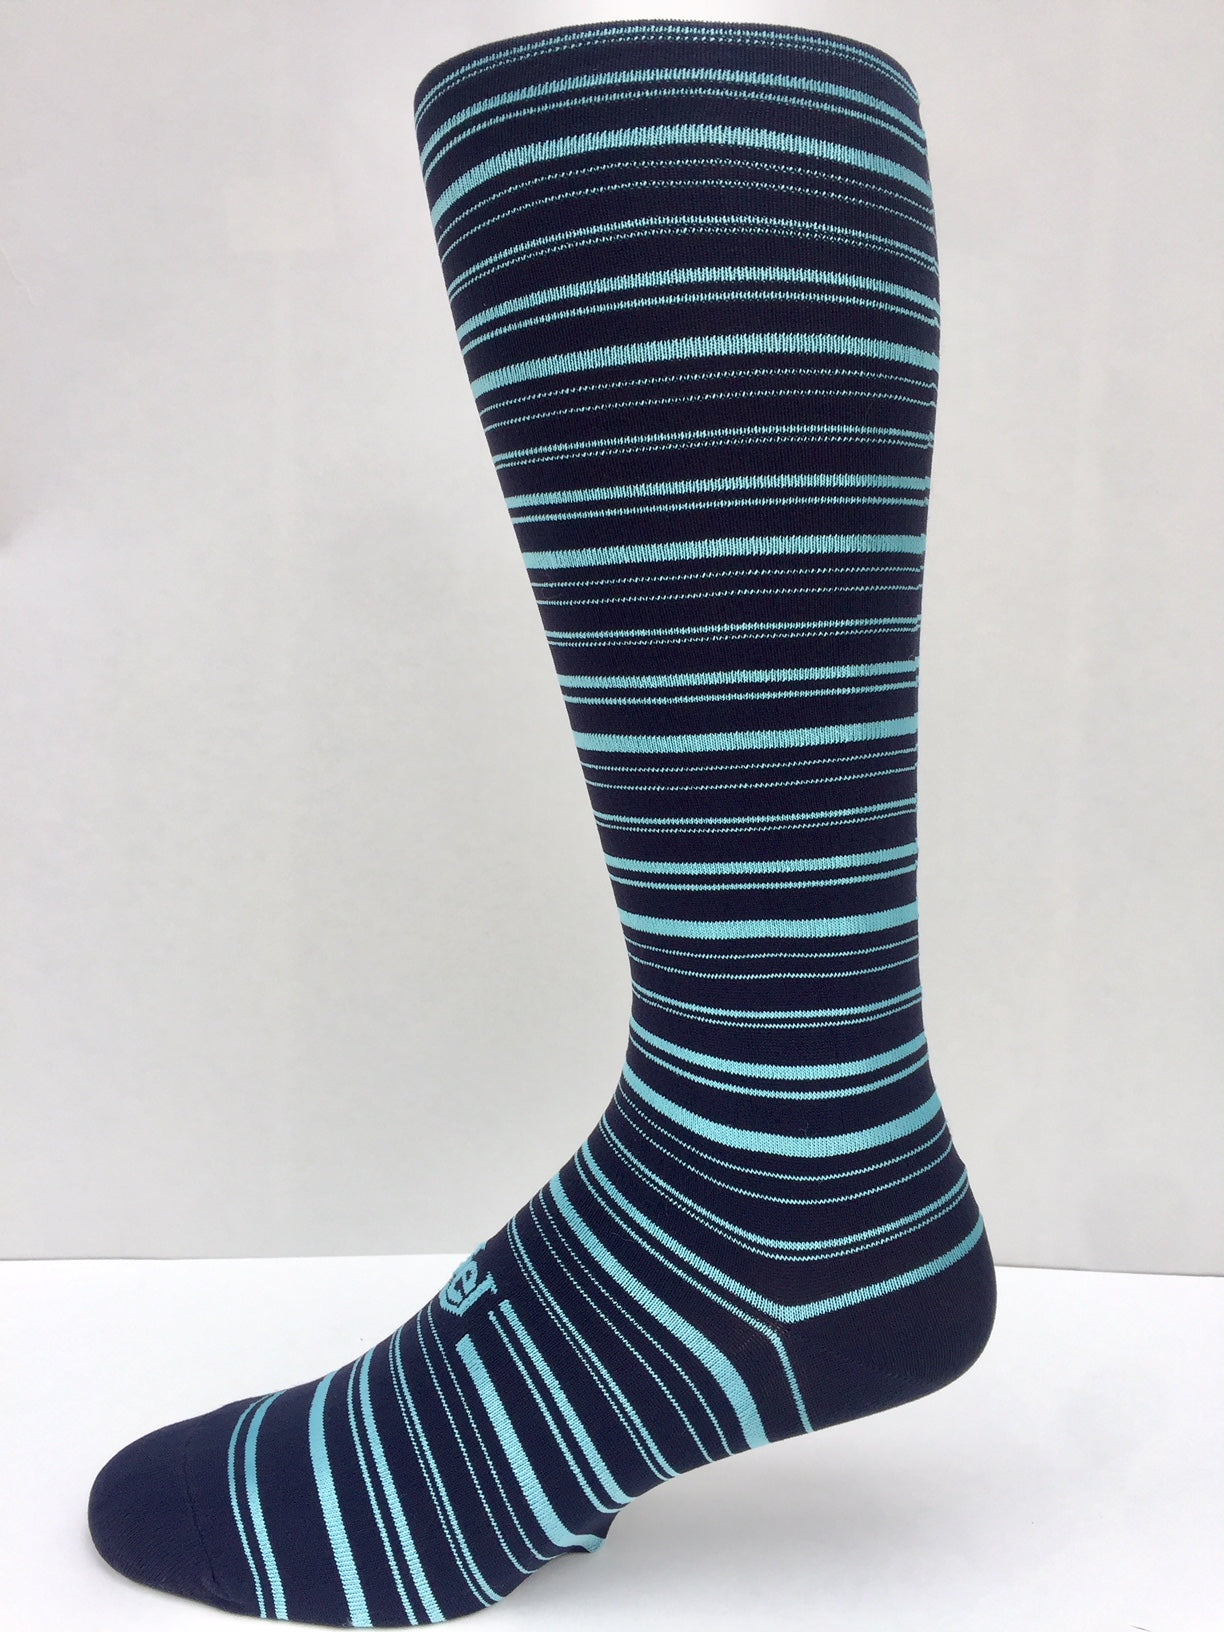 New Stripe 2020 Bright Teal on Dark Navy Men's Socks OTC